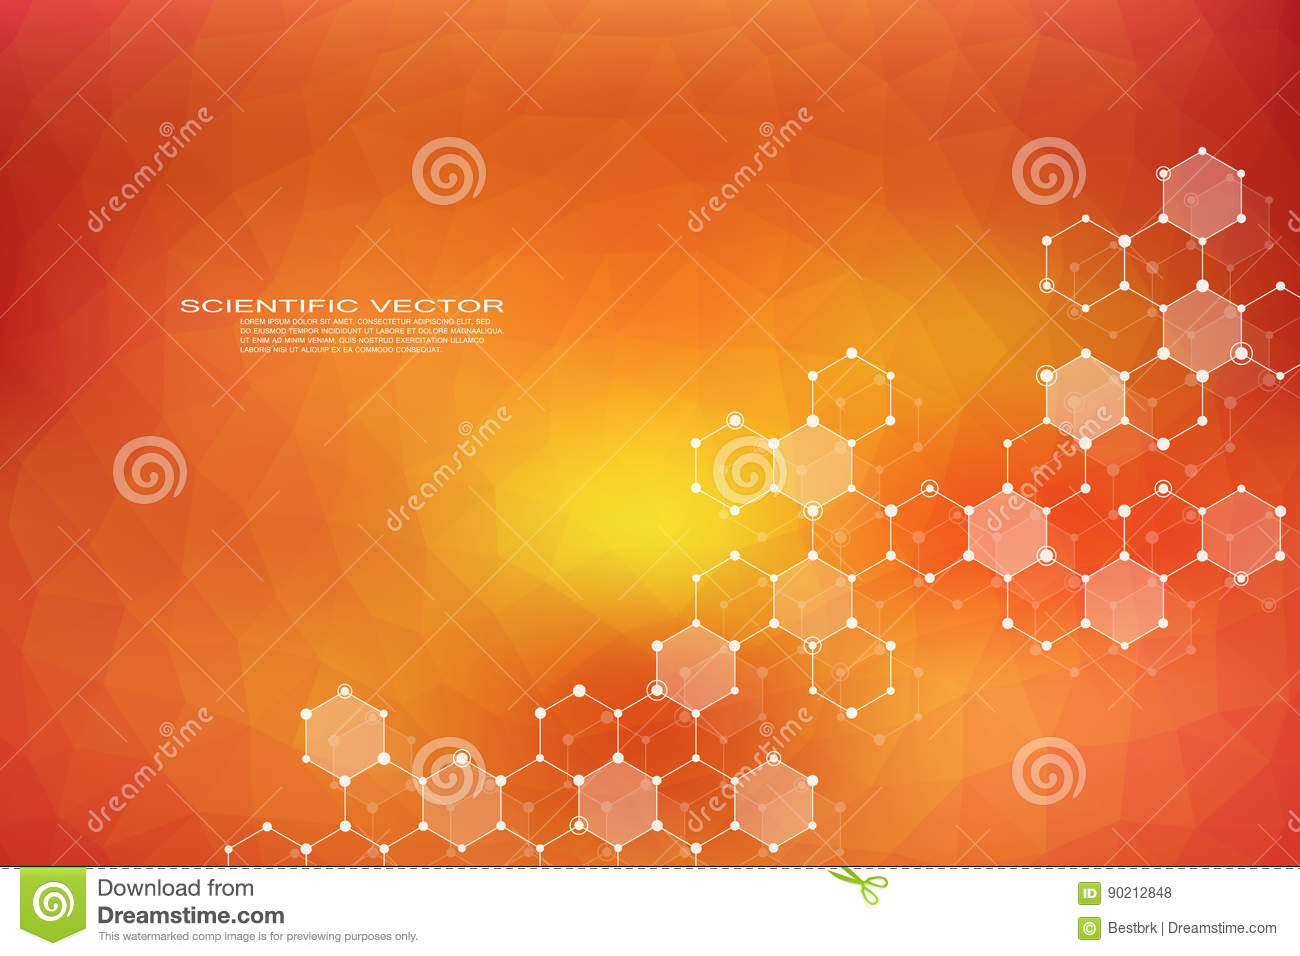 Hexagonal structure molecule dna of neurons system genetic and chemical compounds medical or scientific background